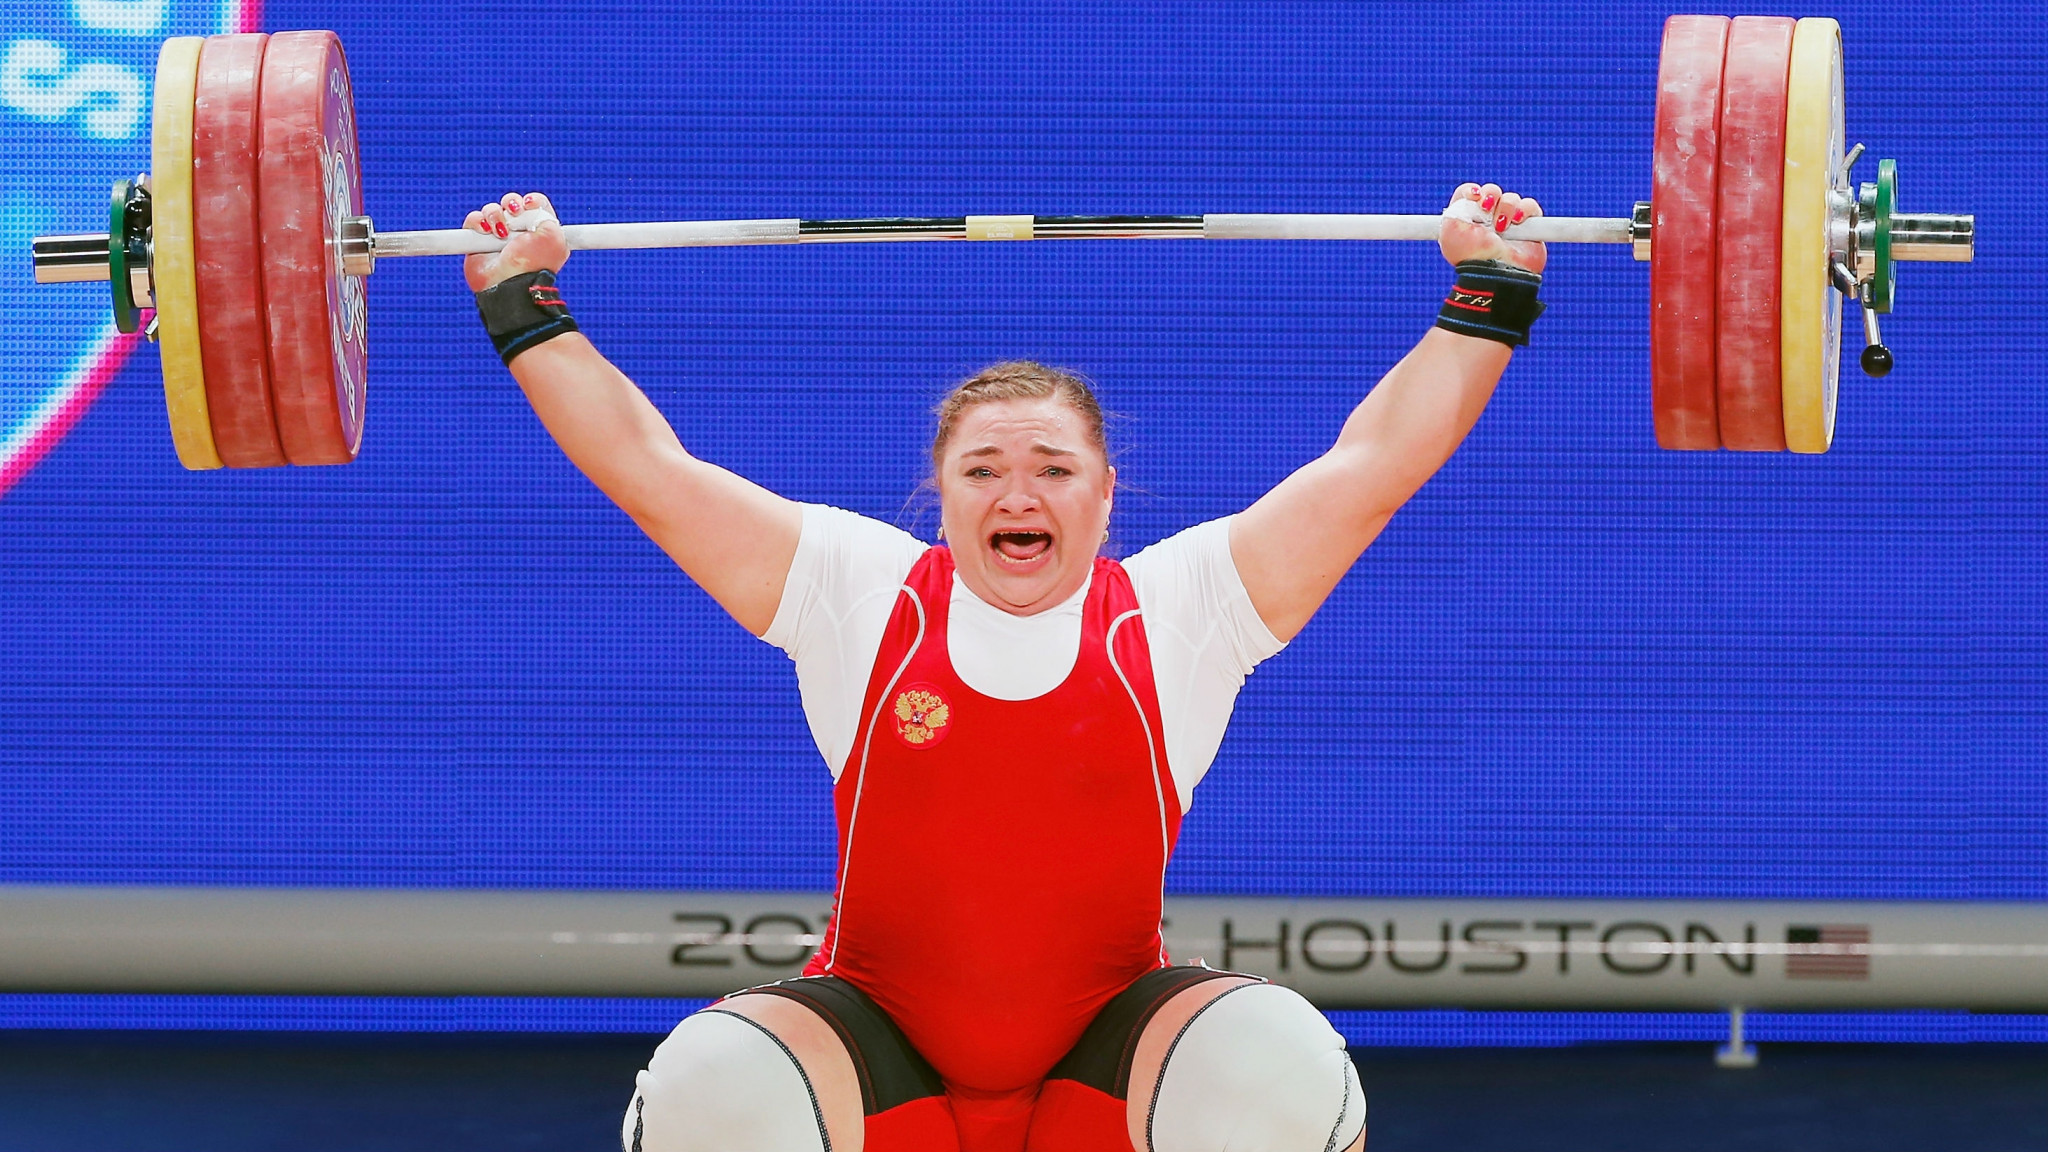 Russia are among the countries set to be affected by the IWF's new rule for Tokyo 2020 which means a country's doping record could affect how many quota places they receive ©Getty Images